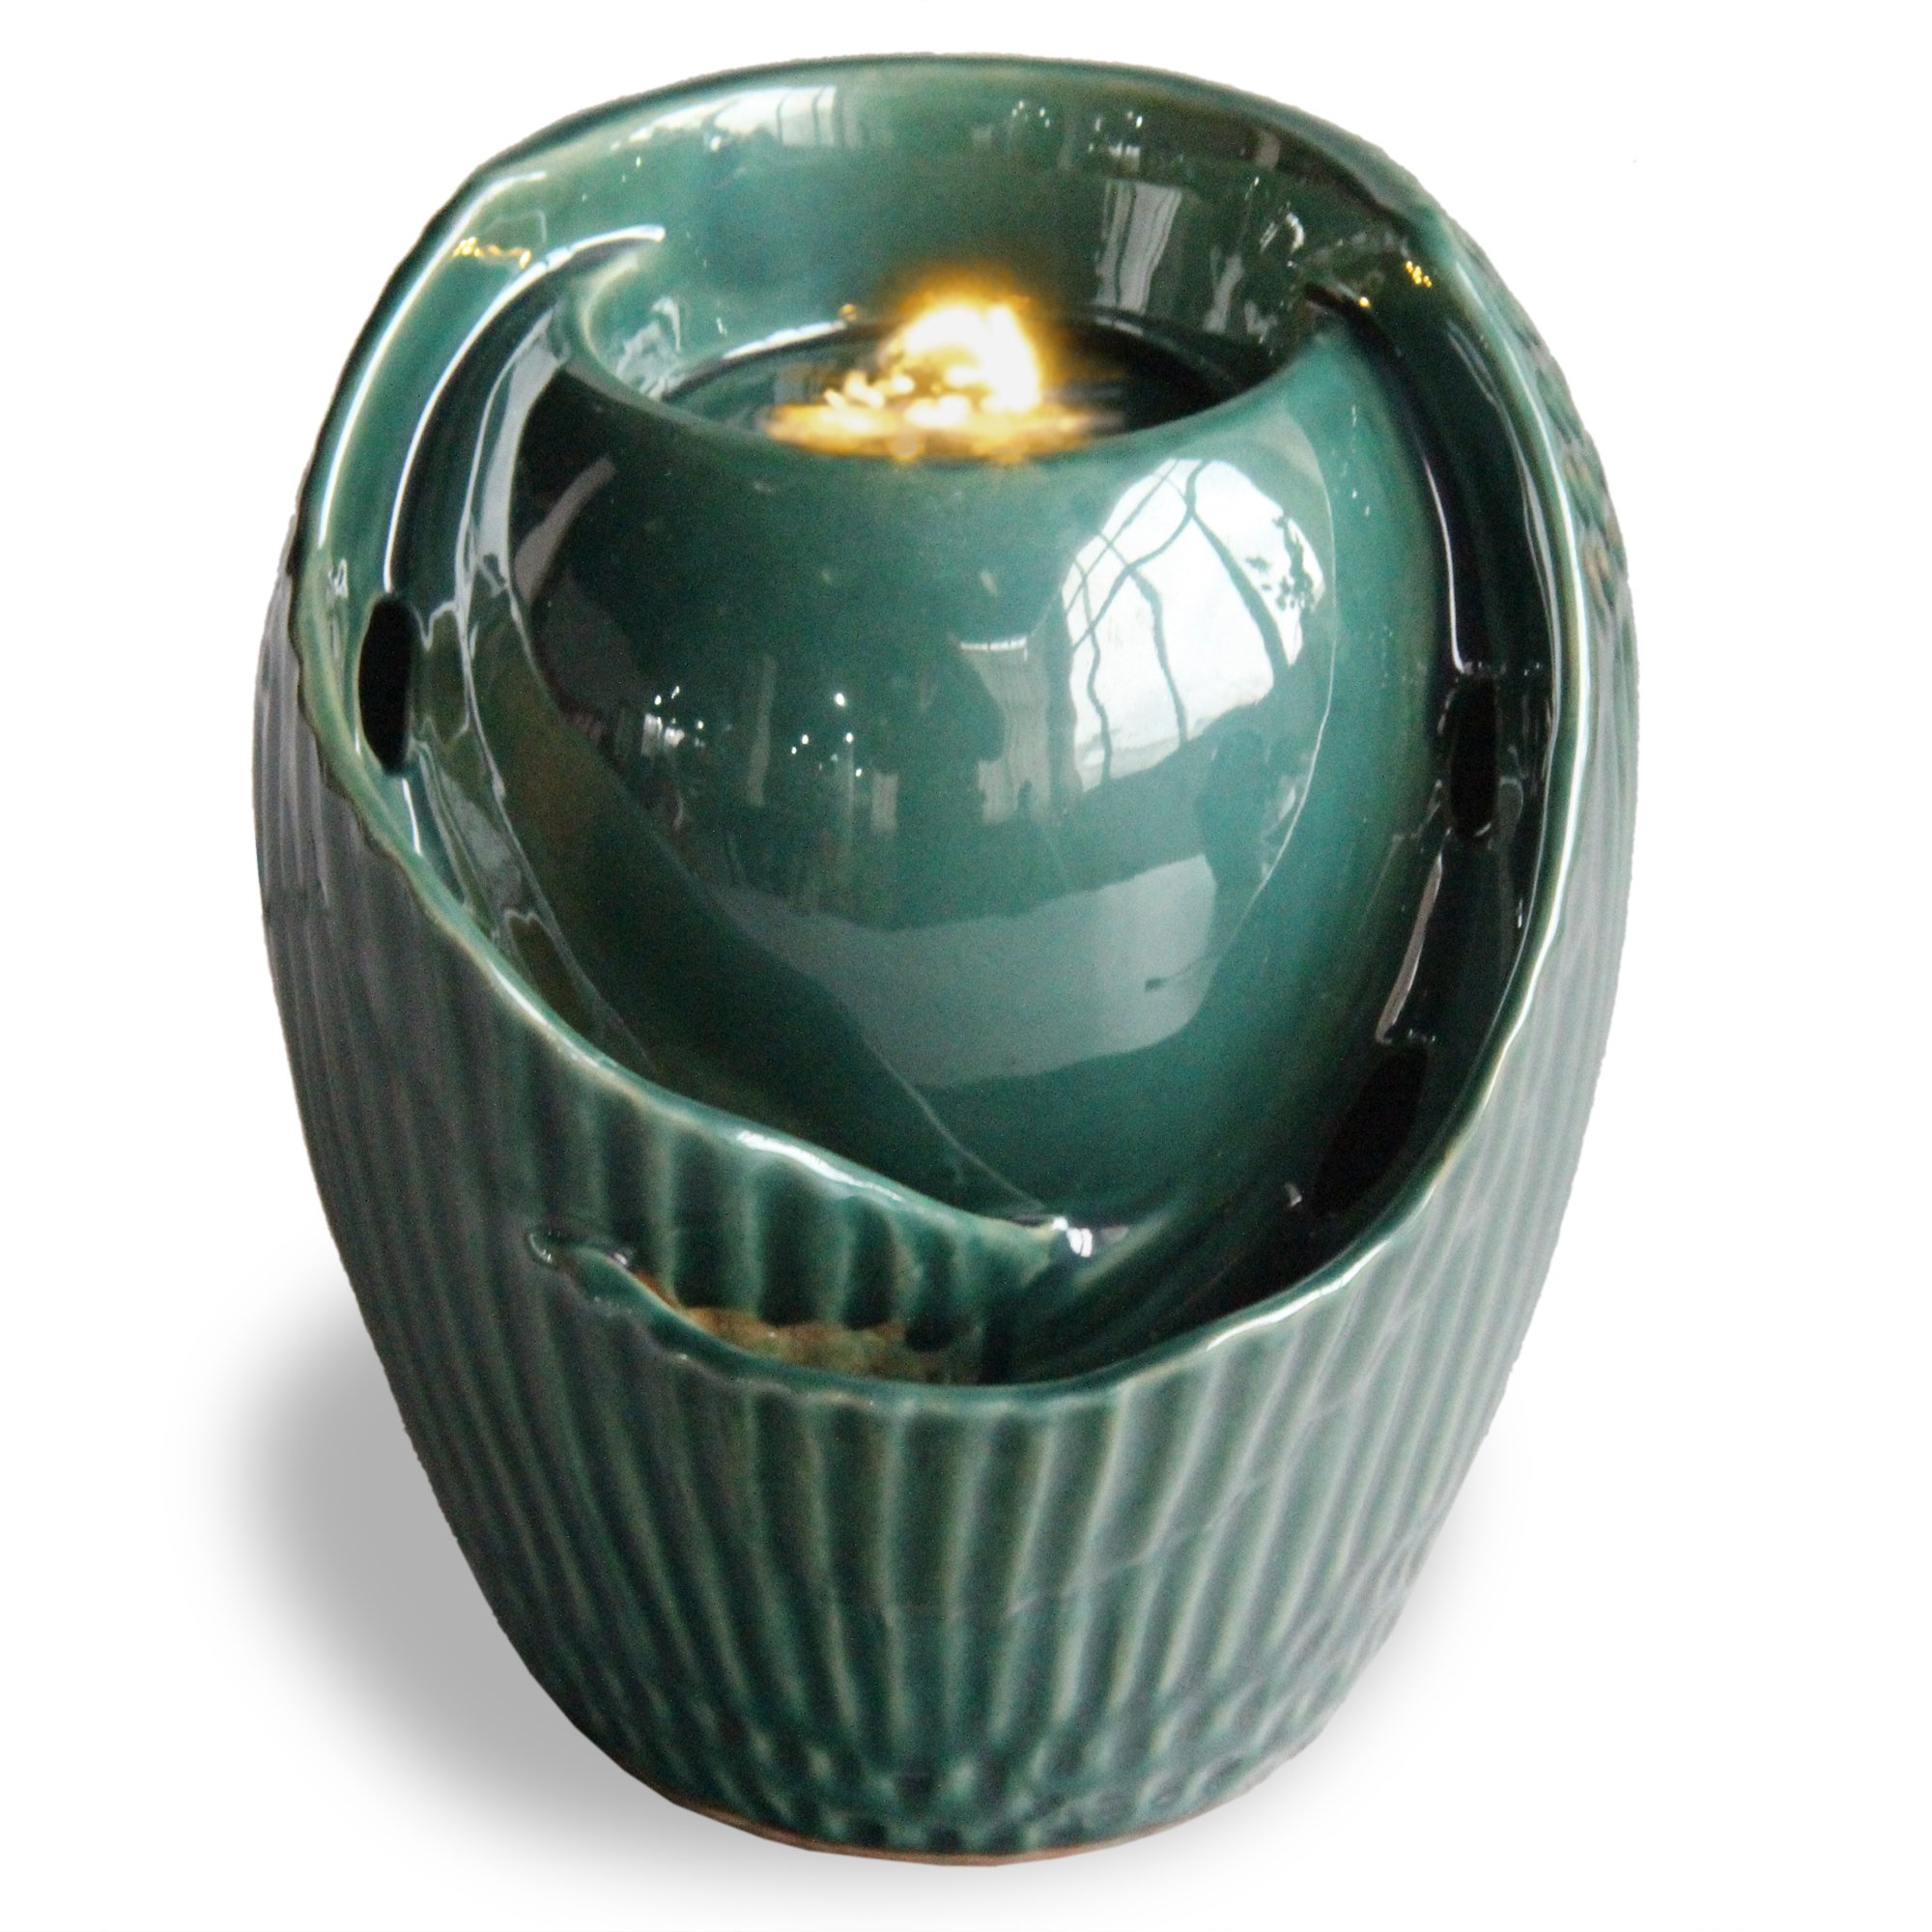 Pacific Decor Led Fountain, 8-Inch x 6.5-Inch, Green by Pacific Decor